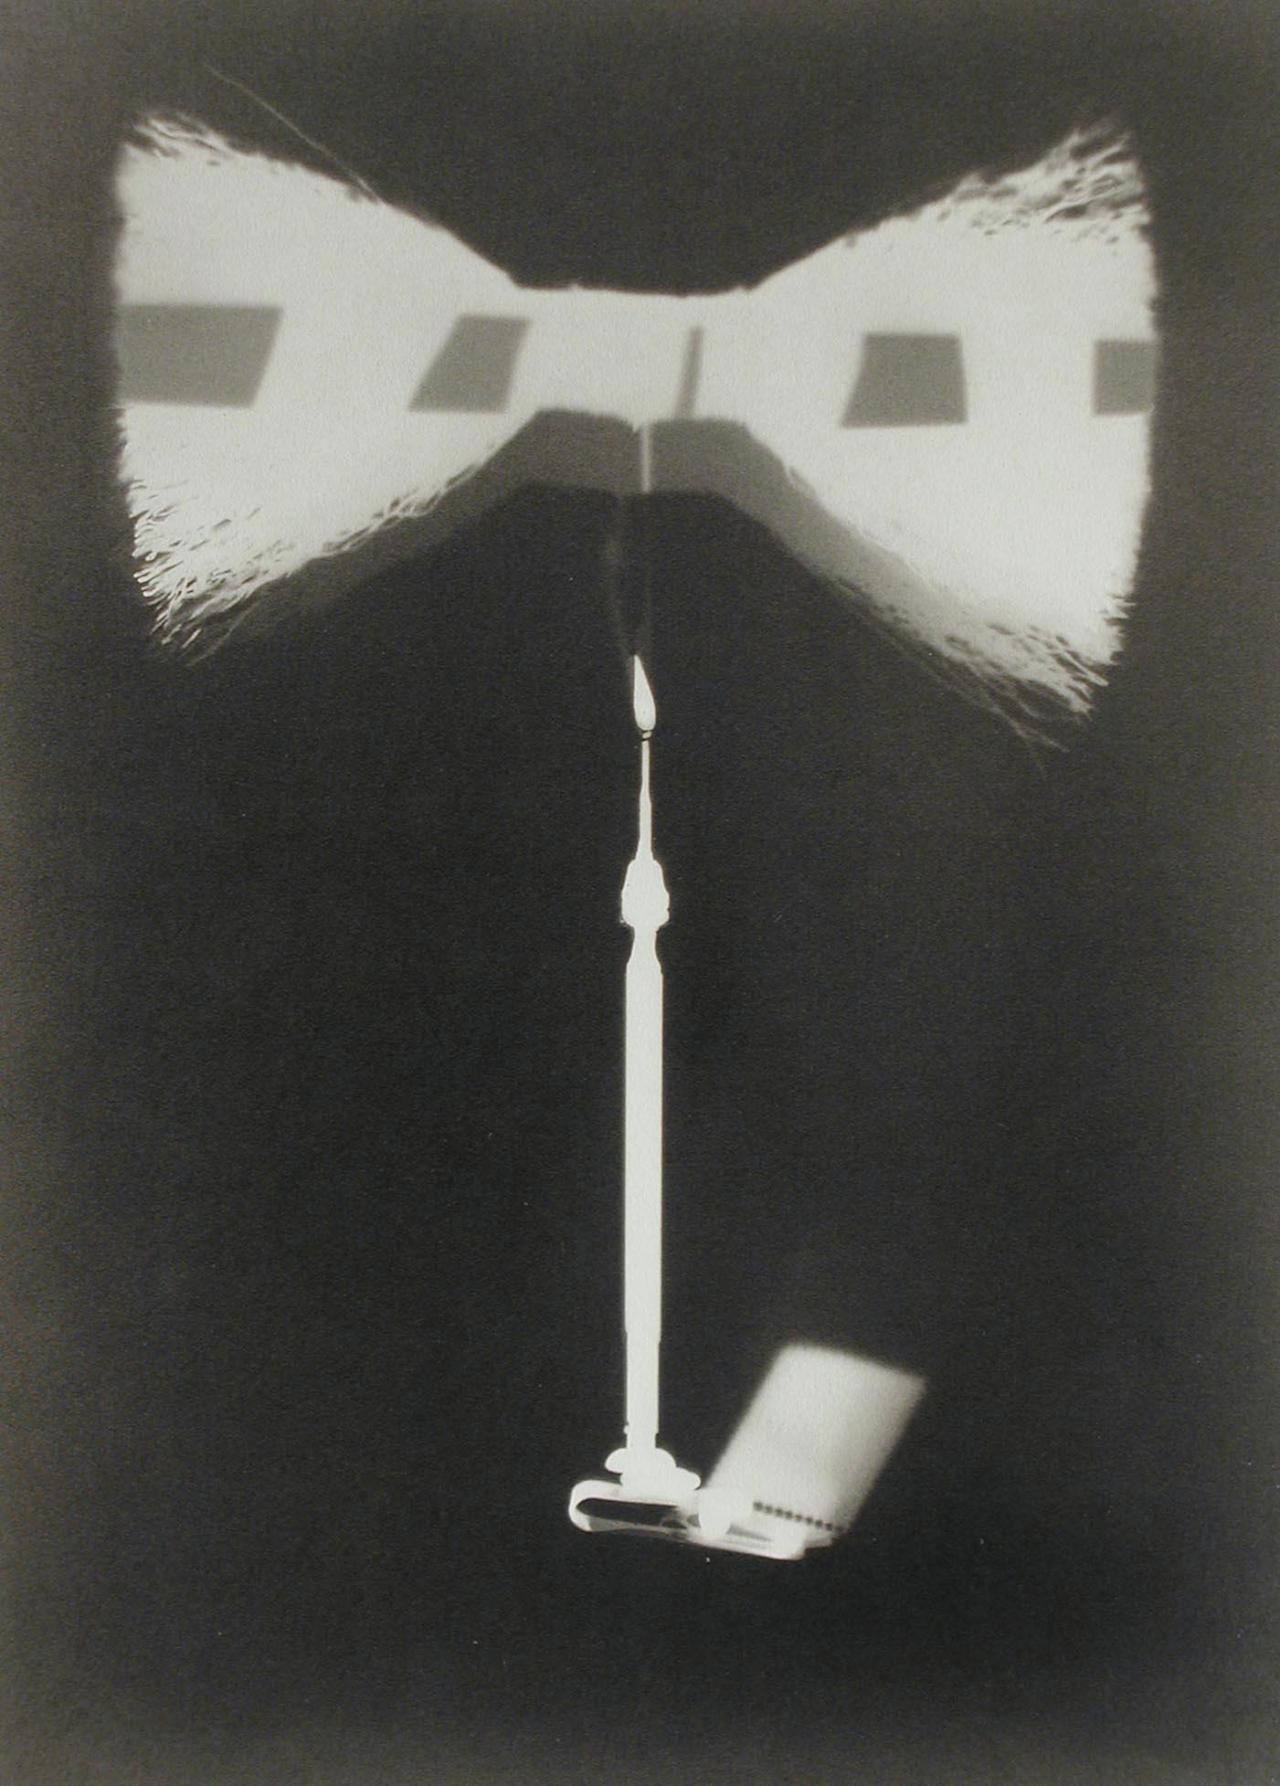 Man, Ray (1890-1977) Ray-o-Graph I. Date: 1921-23 via